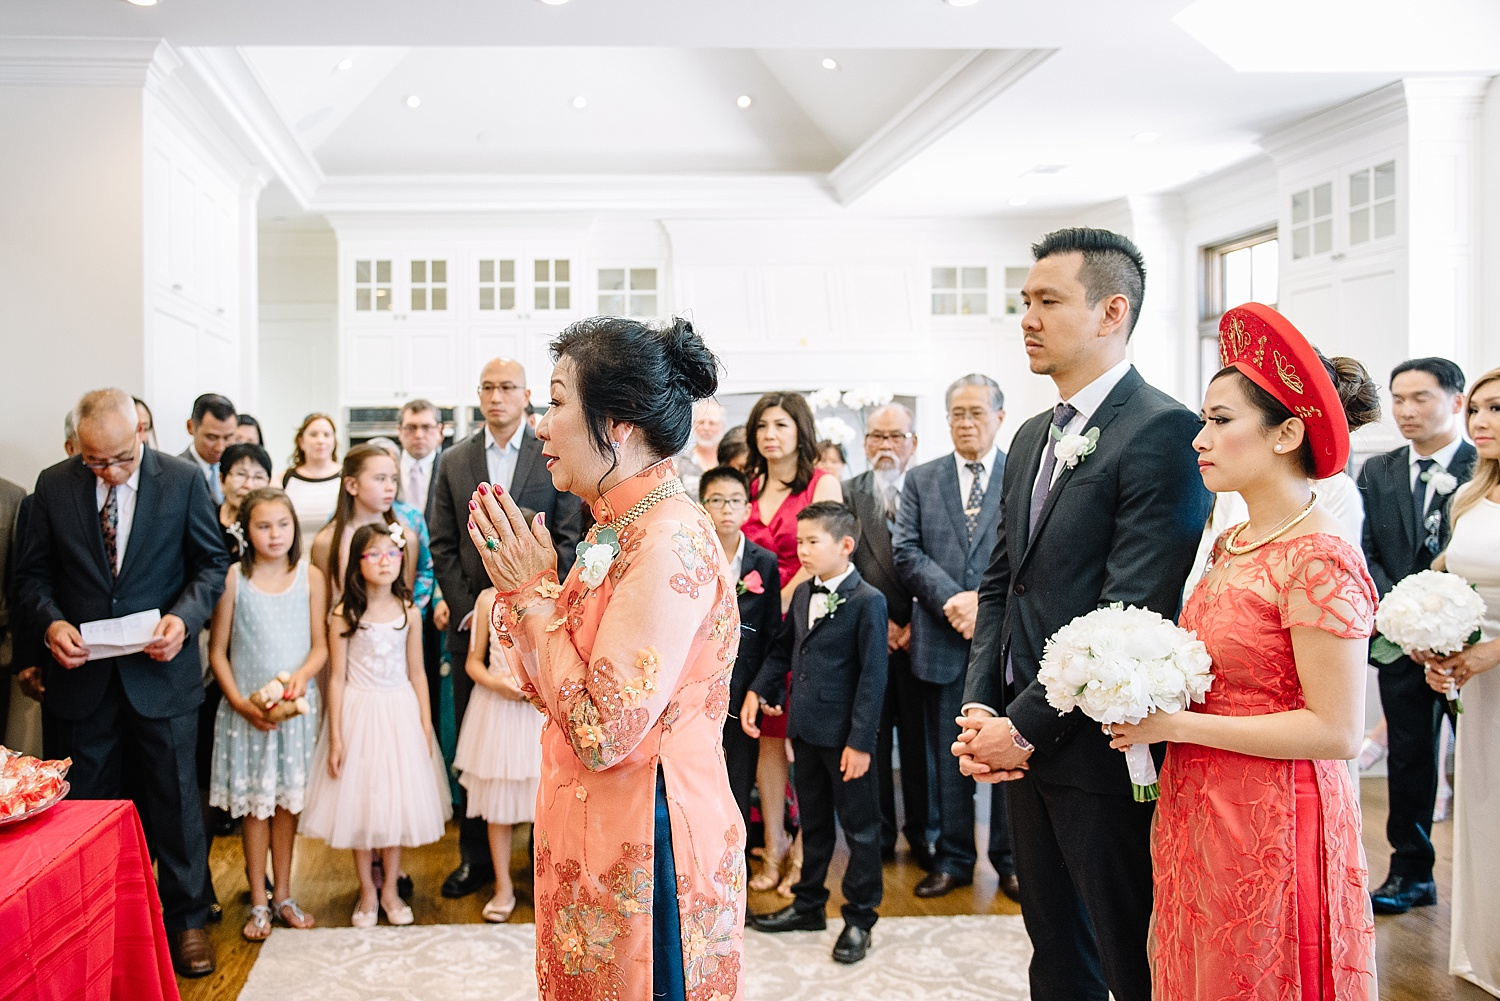 jennifer-jayn-photography-los-altos-wedding-vietnamese-tea-ceremony_0031.jpg